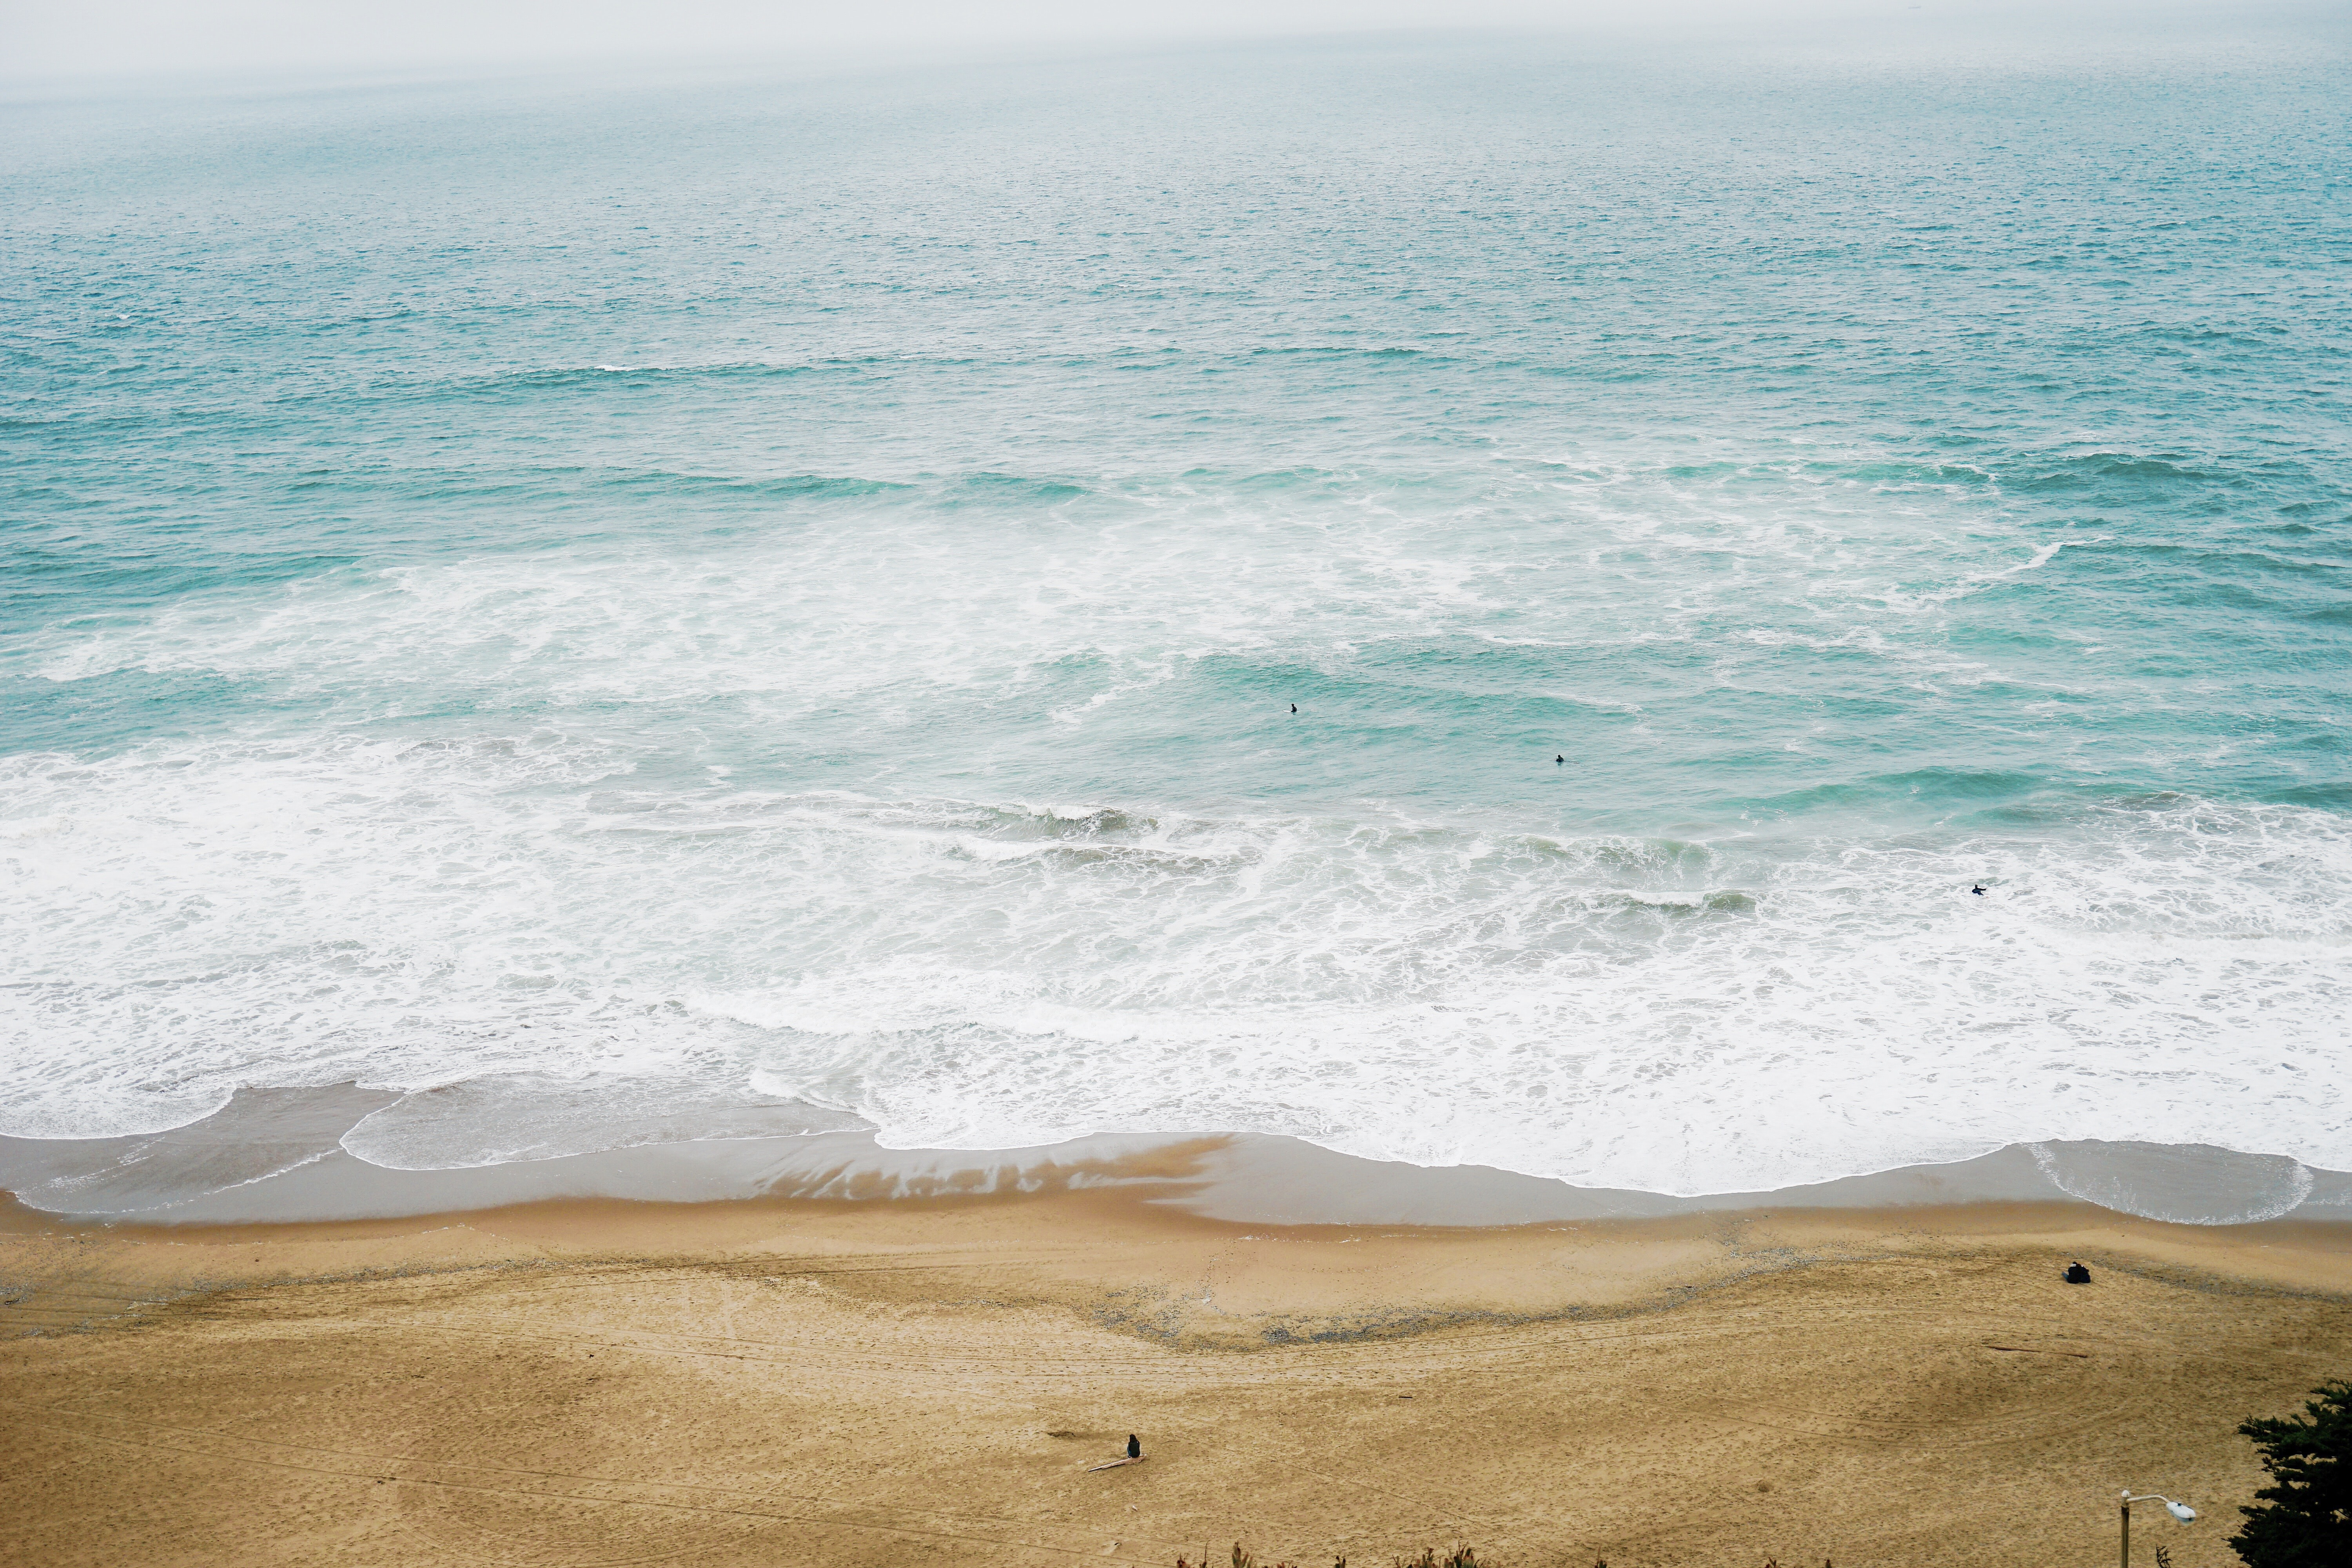 Drone view of the ocean washing on the sand beach at Ocean Beach